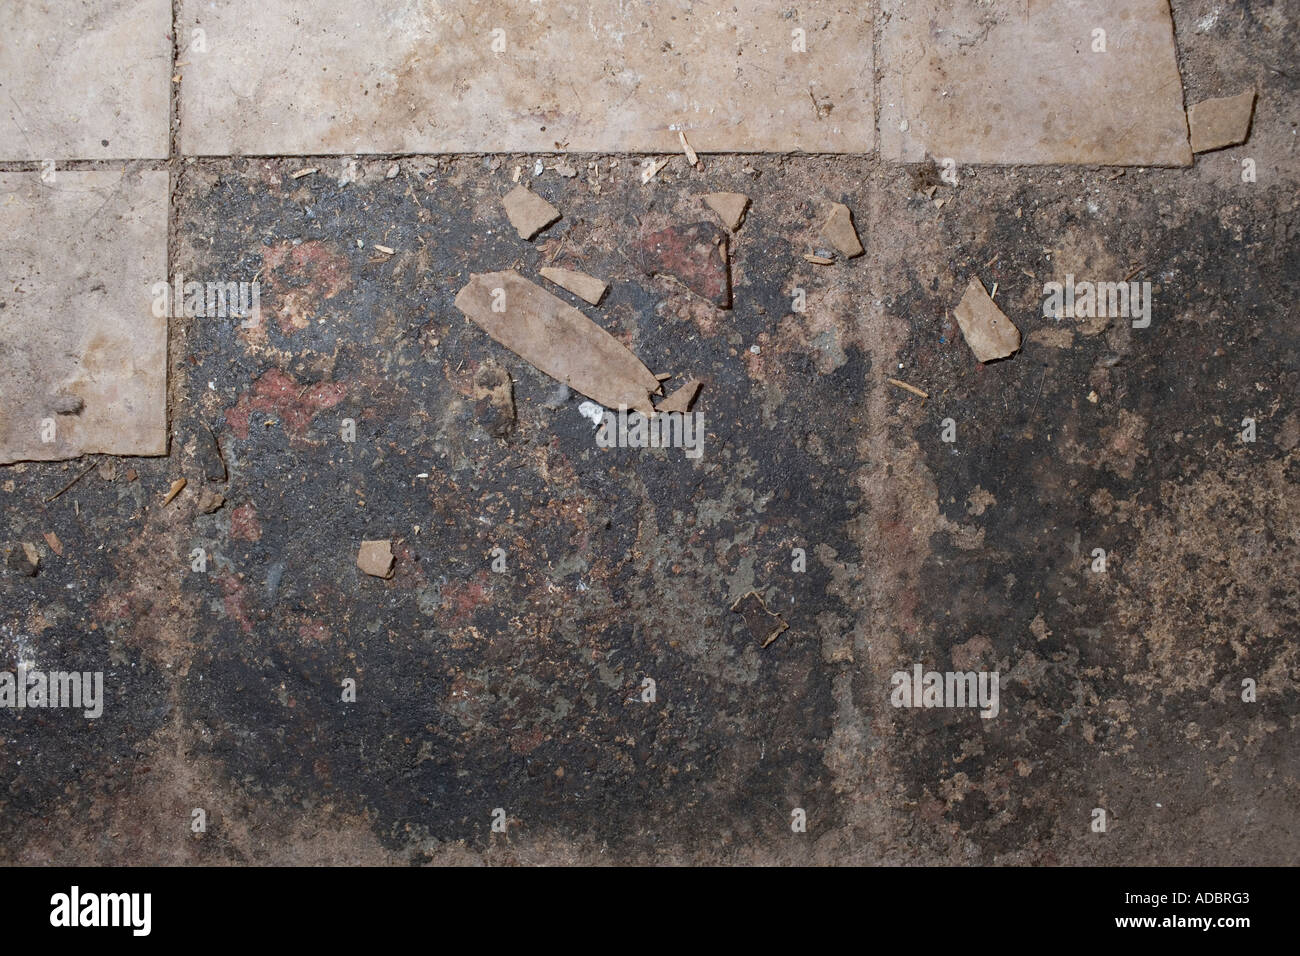 Asbestos tile in basement floor crumbling stock photo for Crumbling concrete floor